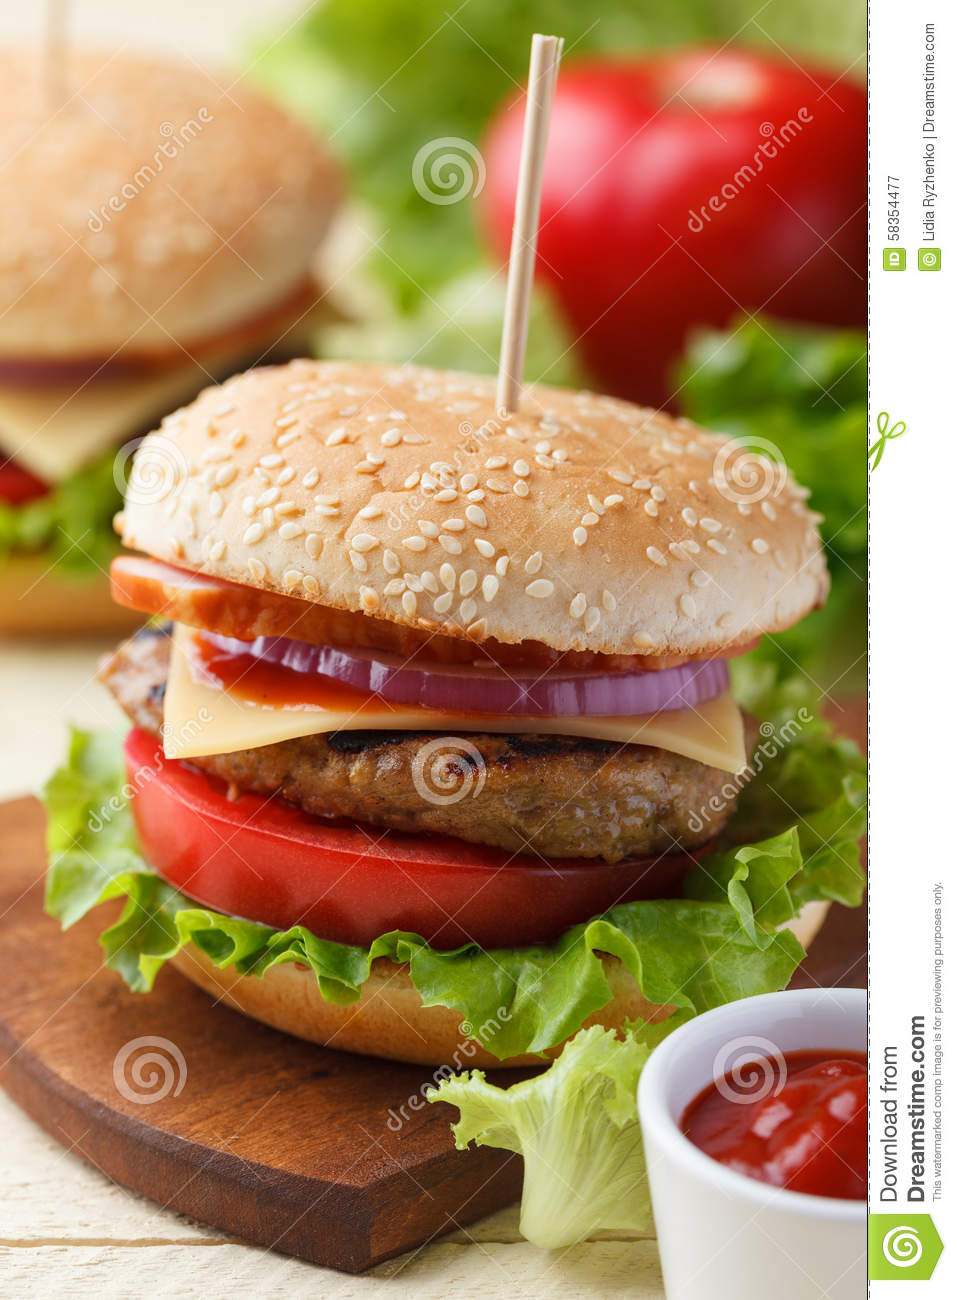 Burger on the wooden table stock photo image 58354477 for Table burger